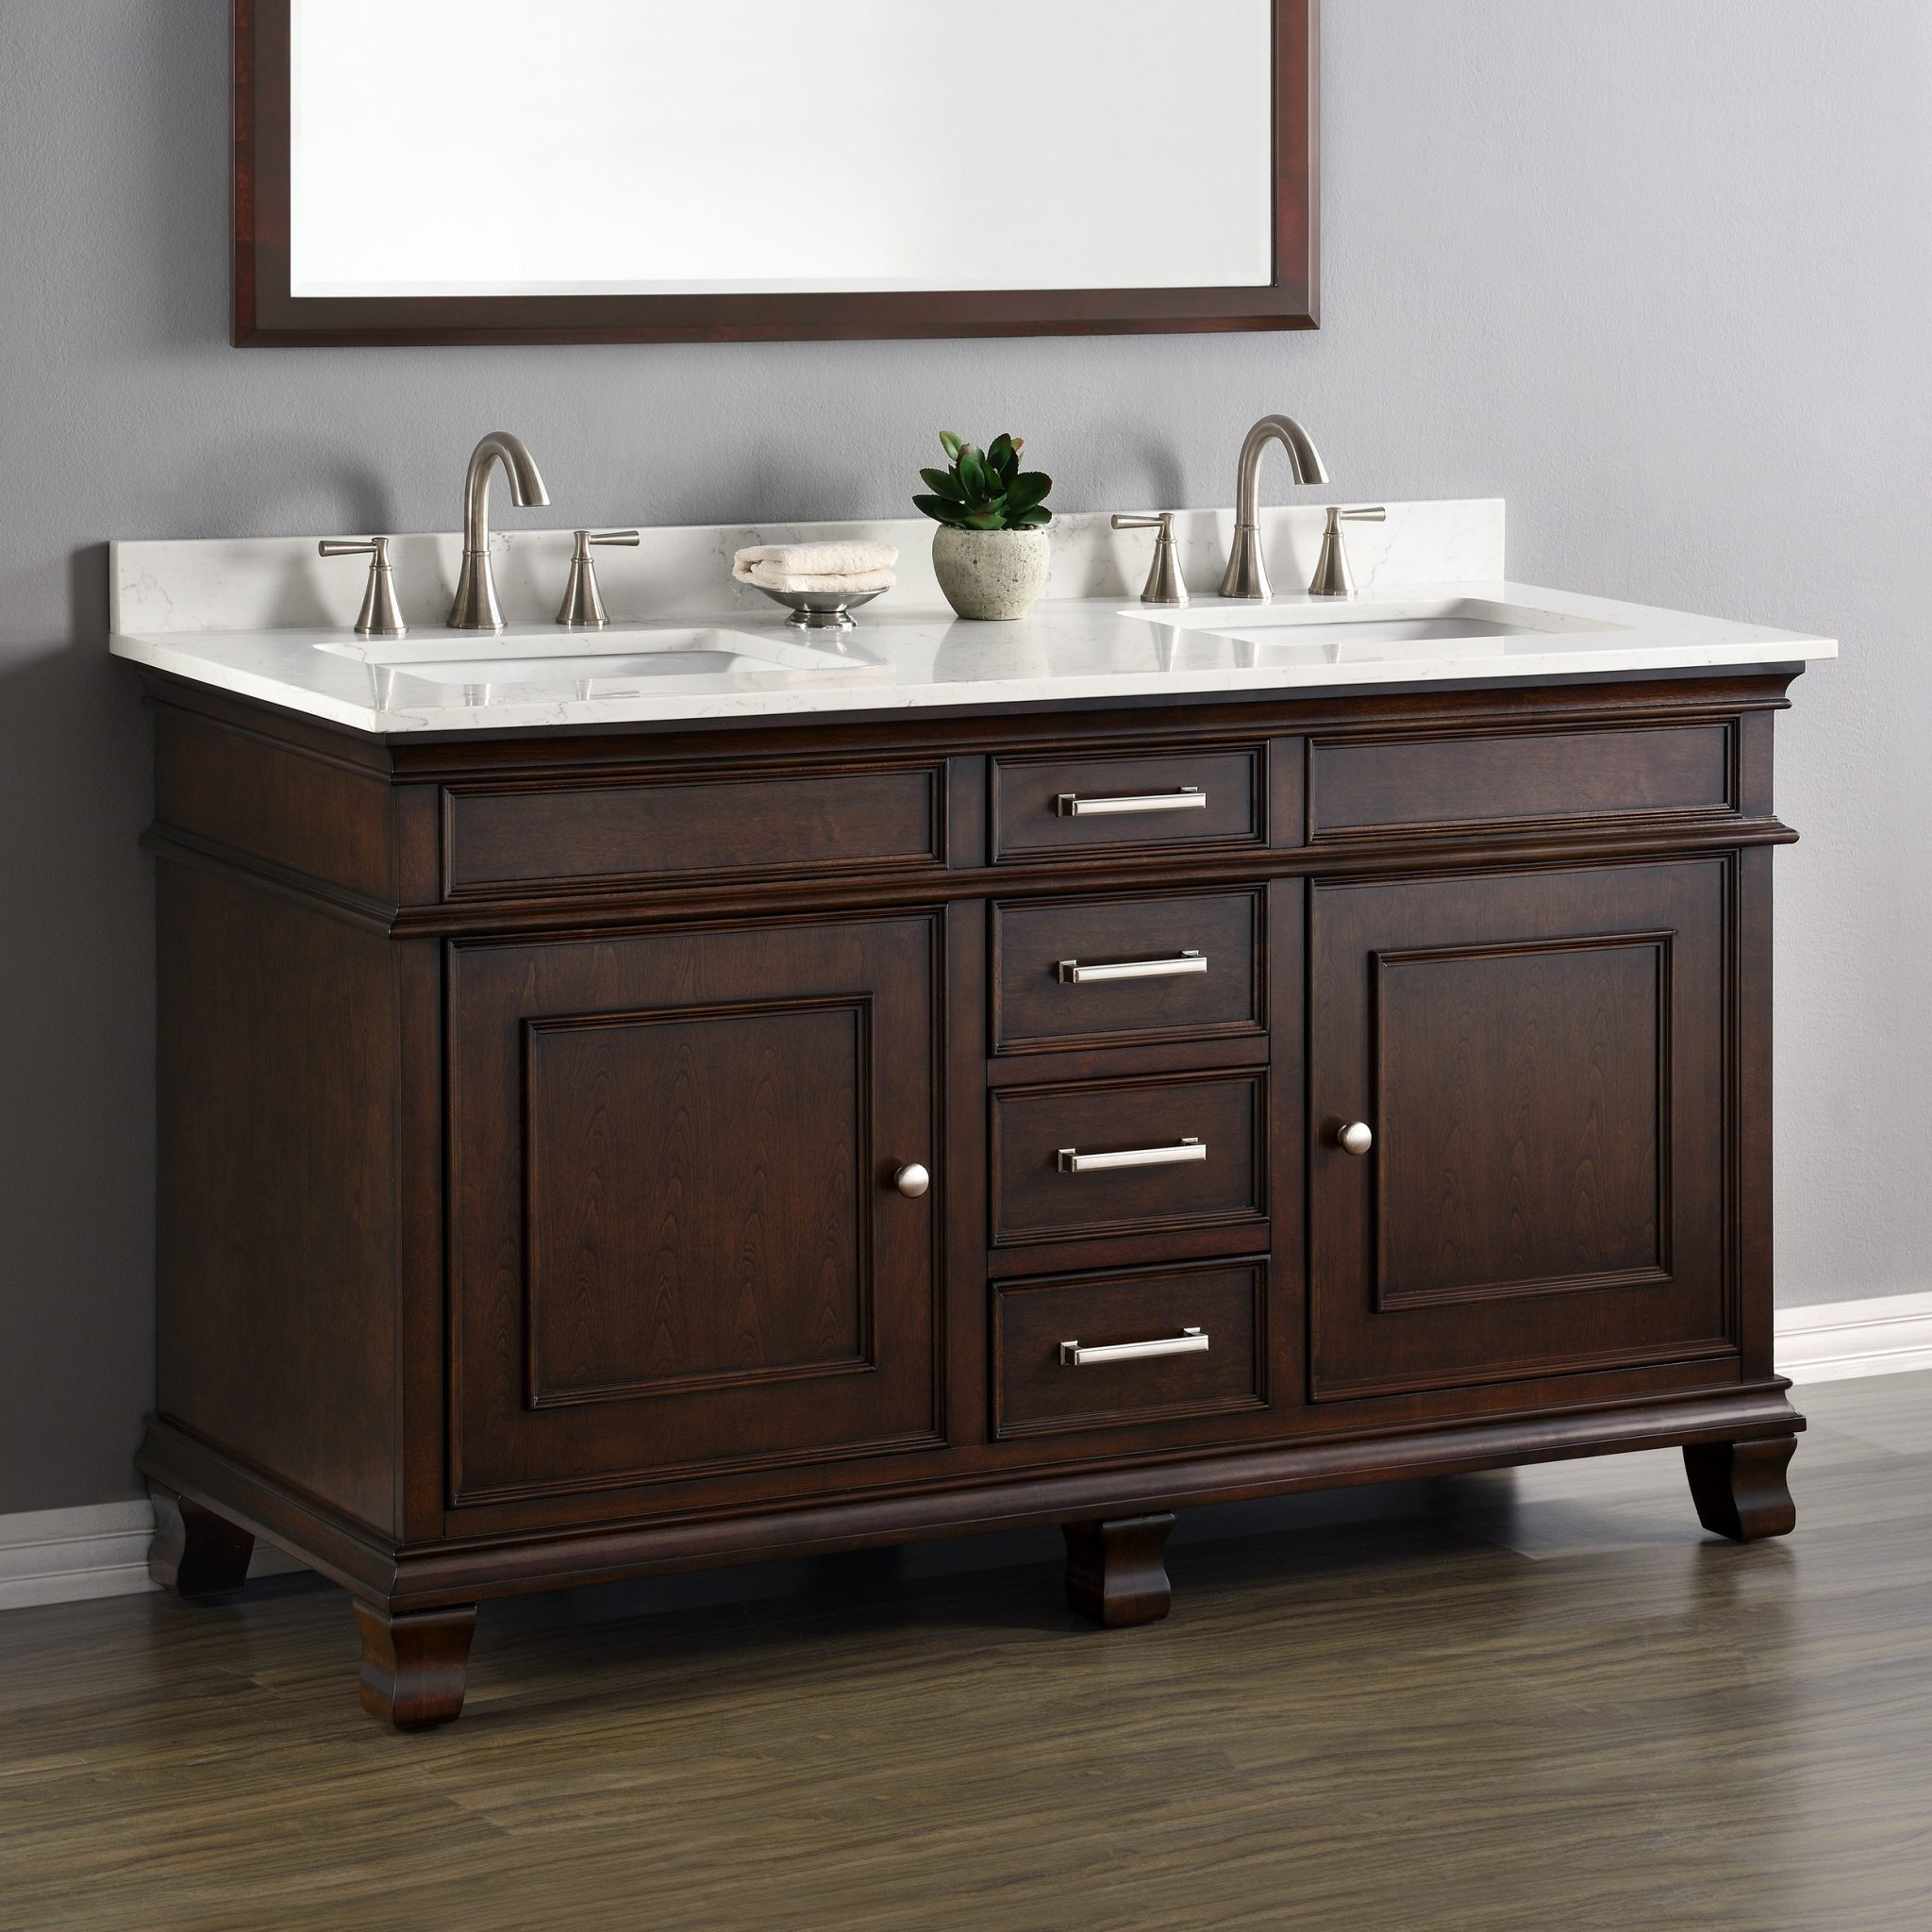 camden 60 double sink vanity mission hills furniture